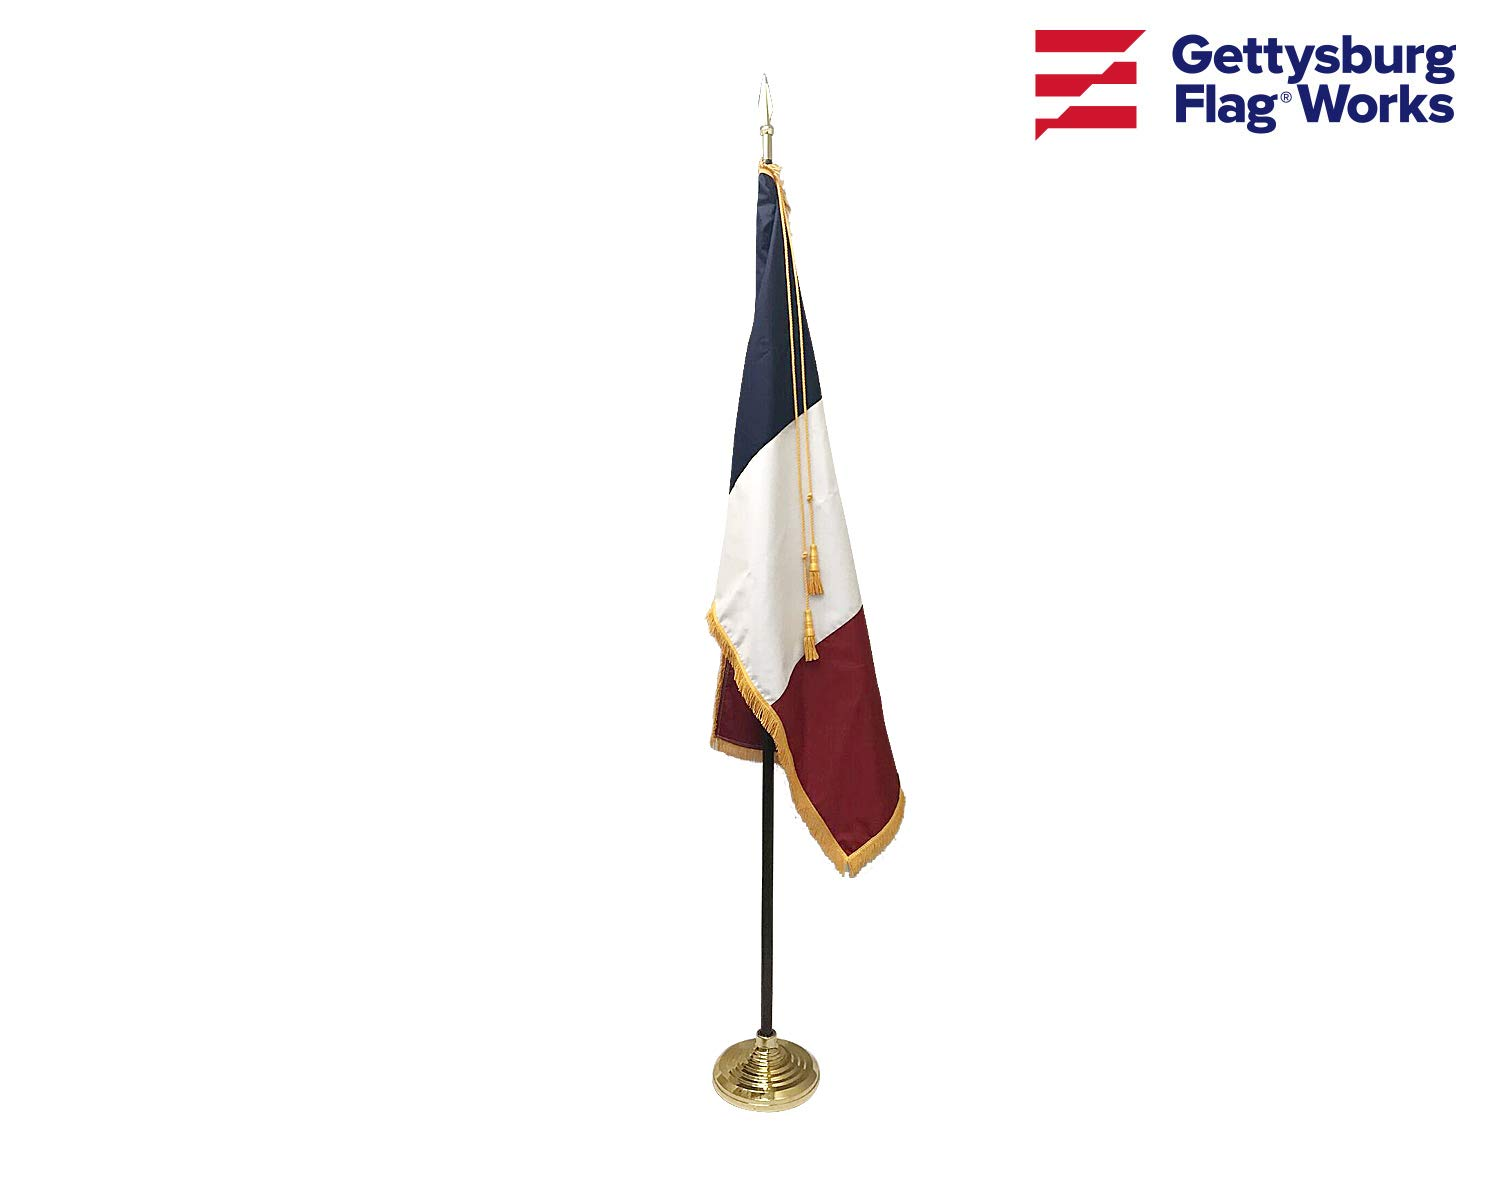 3x5' France Indoor Flag Set, Includes Indoor Flag, Base, Spear Finial and Decorative Cord and Tassel